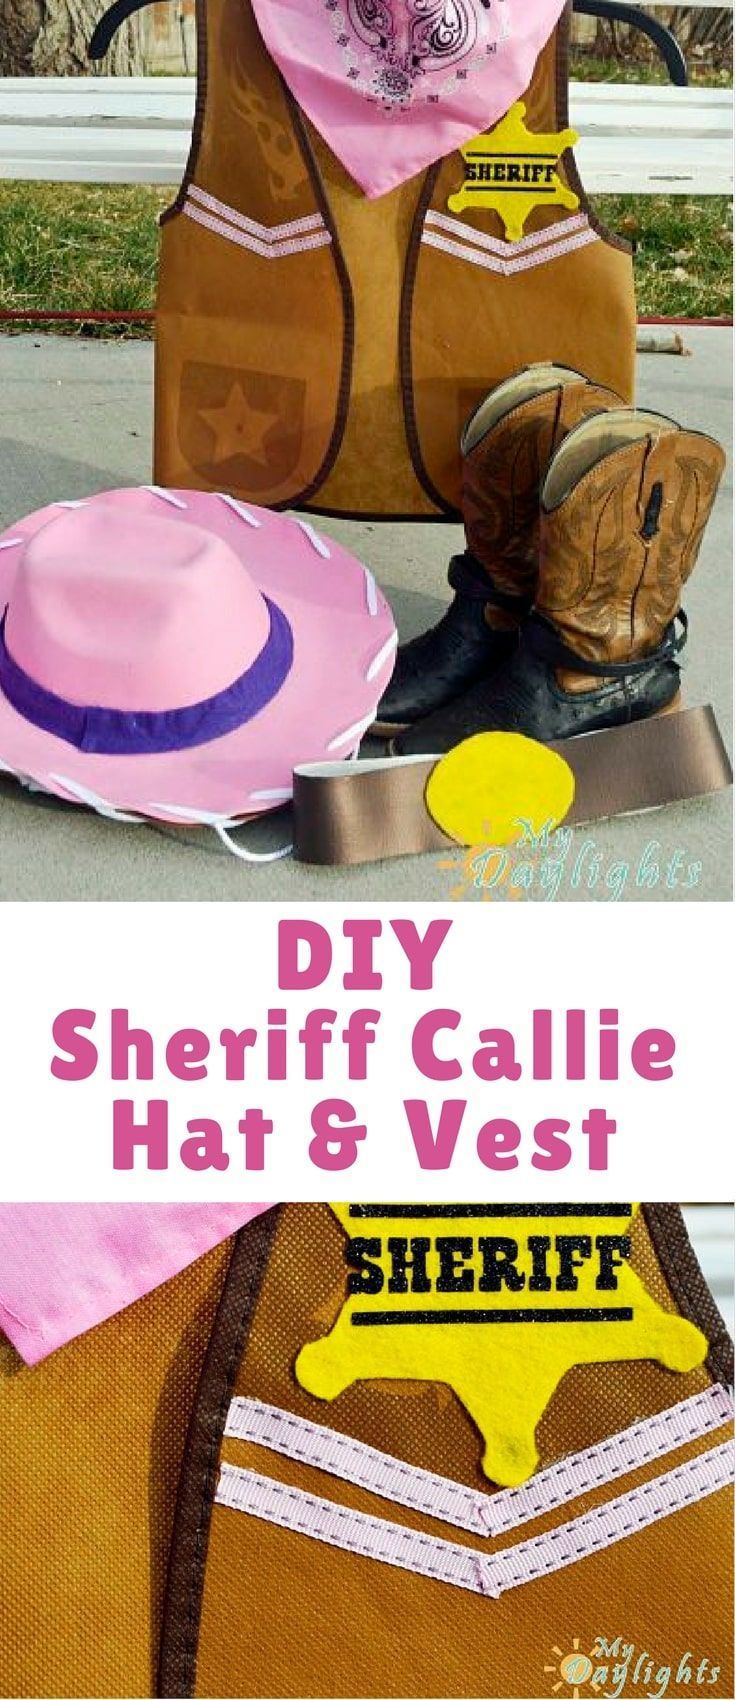 Sheriff Callie is one of our favorite cartoons! My toddler loves it. He prefers dressing up like Peck, rather than Sheriff Callie, but I know if we had a girl she would be all game for dressing up like the infamous kitty sheriff!